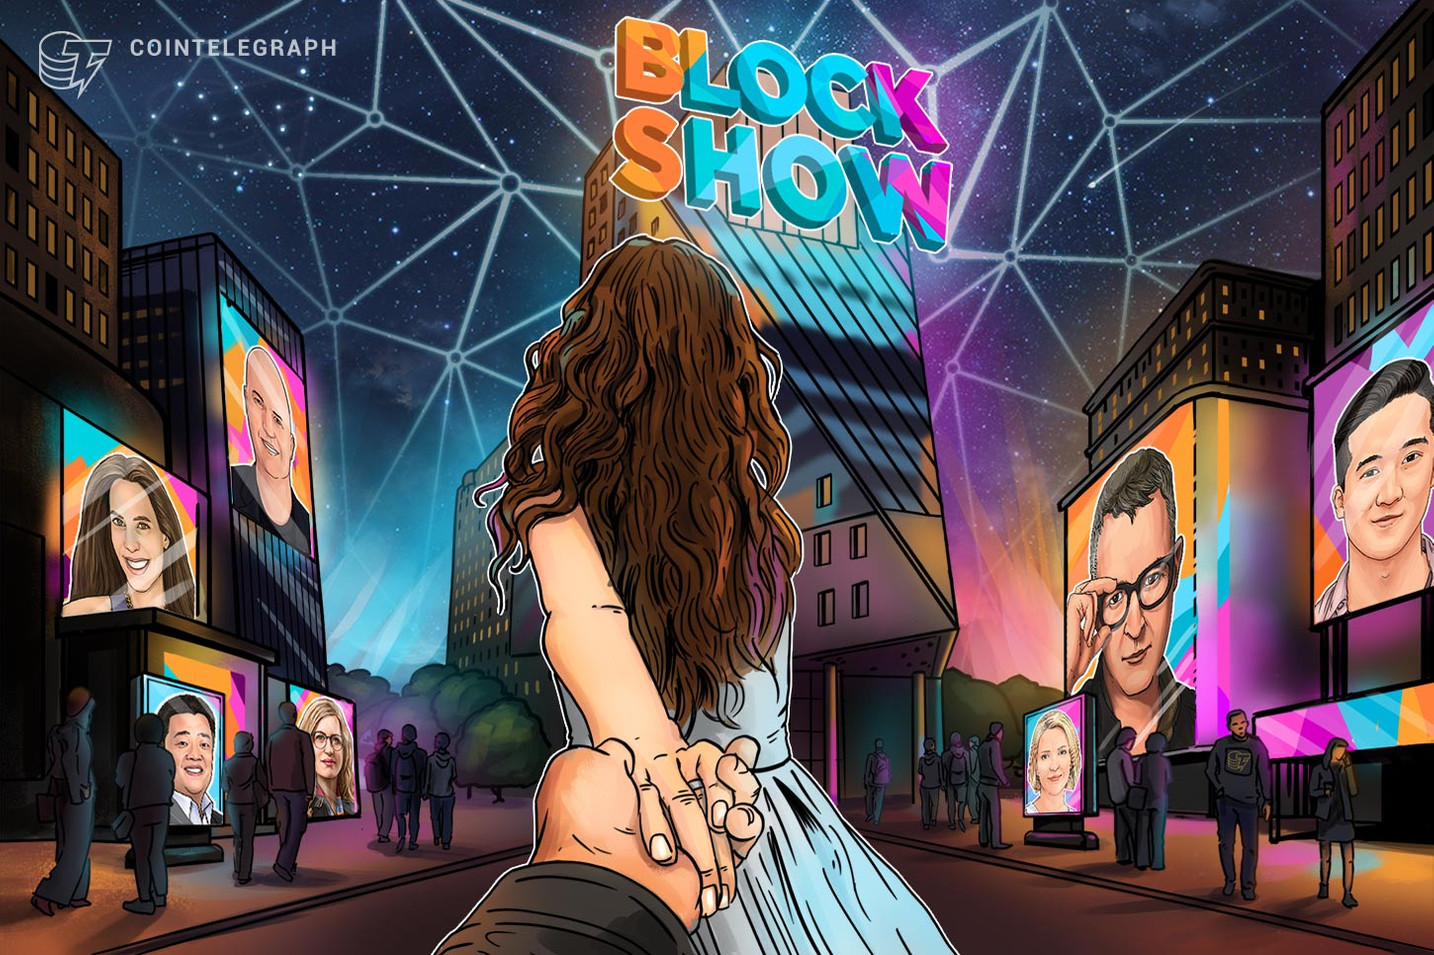 BlockShow Europe 2018 Blasts a Massive Update, Days Prior to the Event